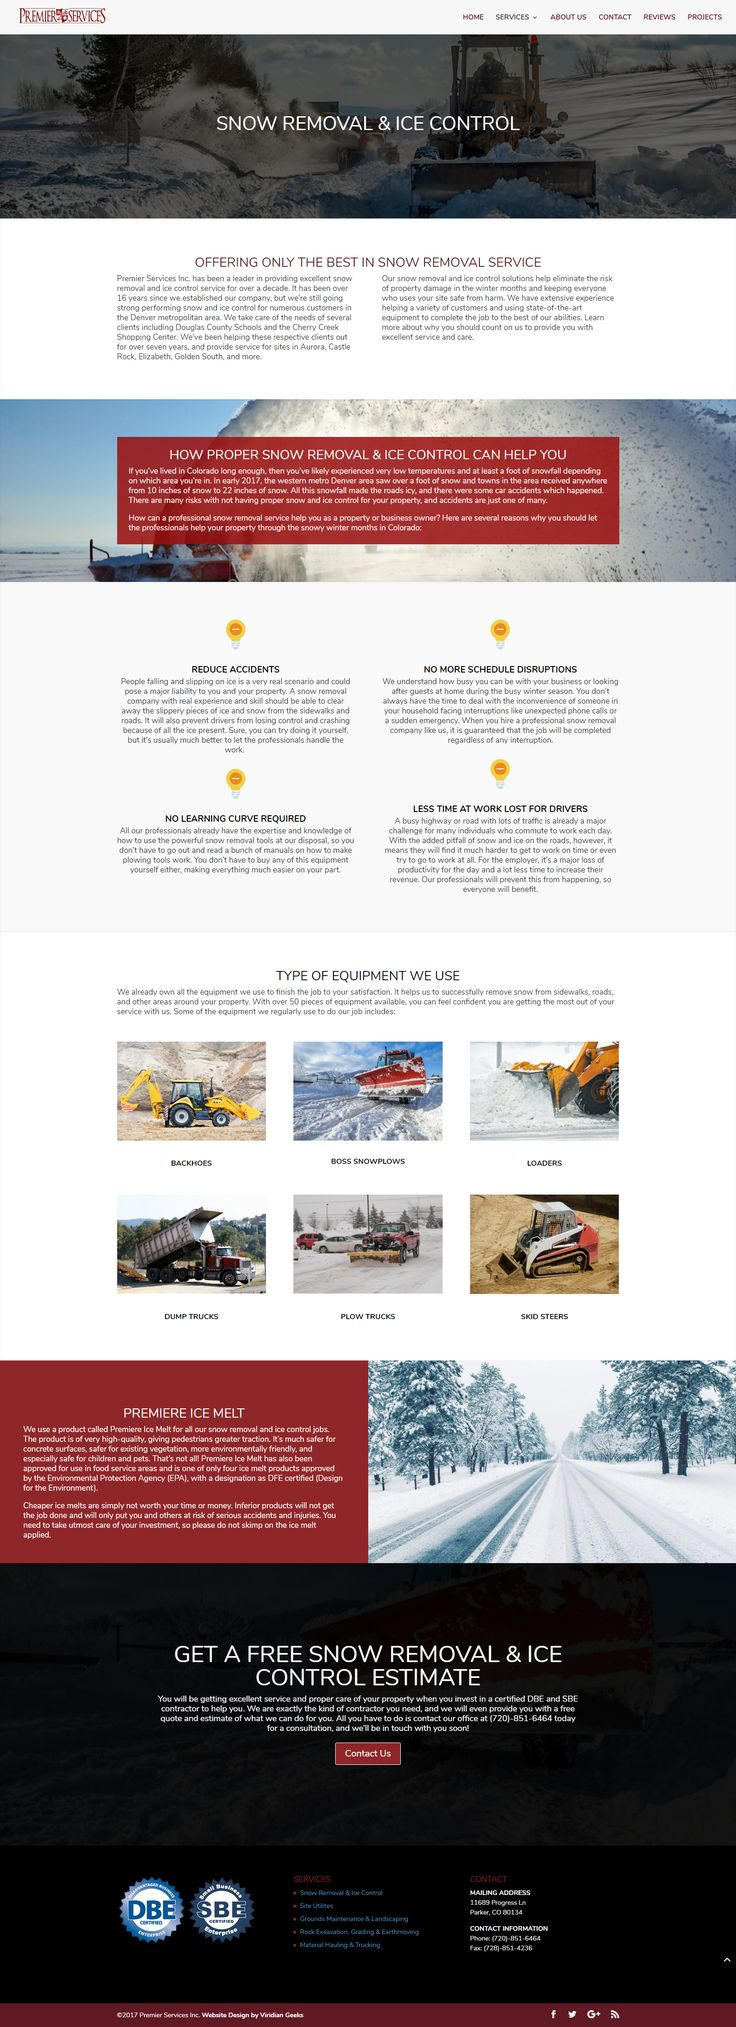 The snow removal service page Viridian Geeks designed for Premier Services, Inc.